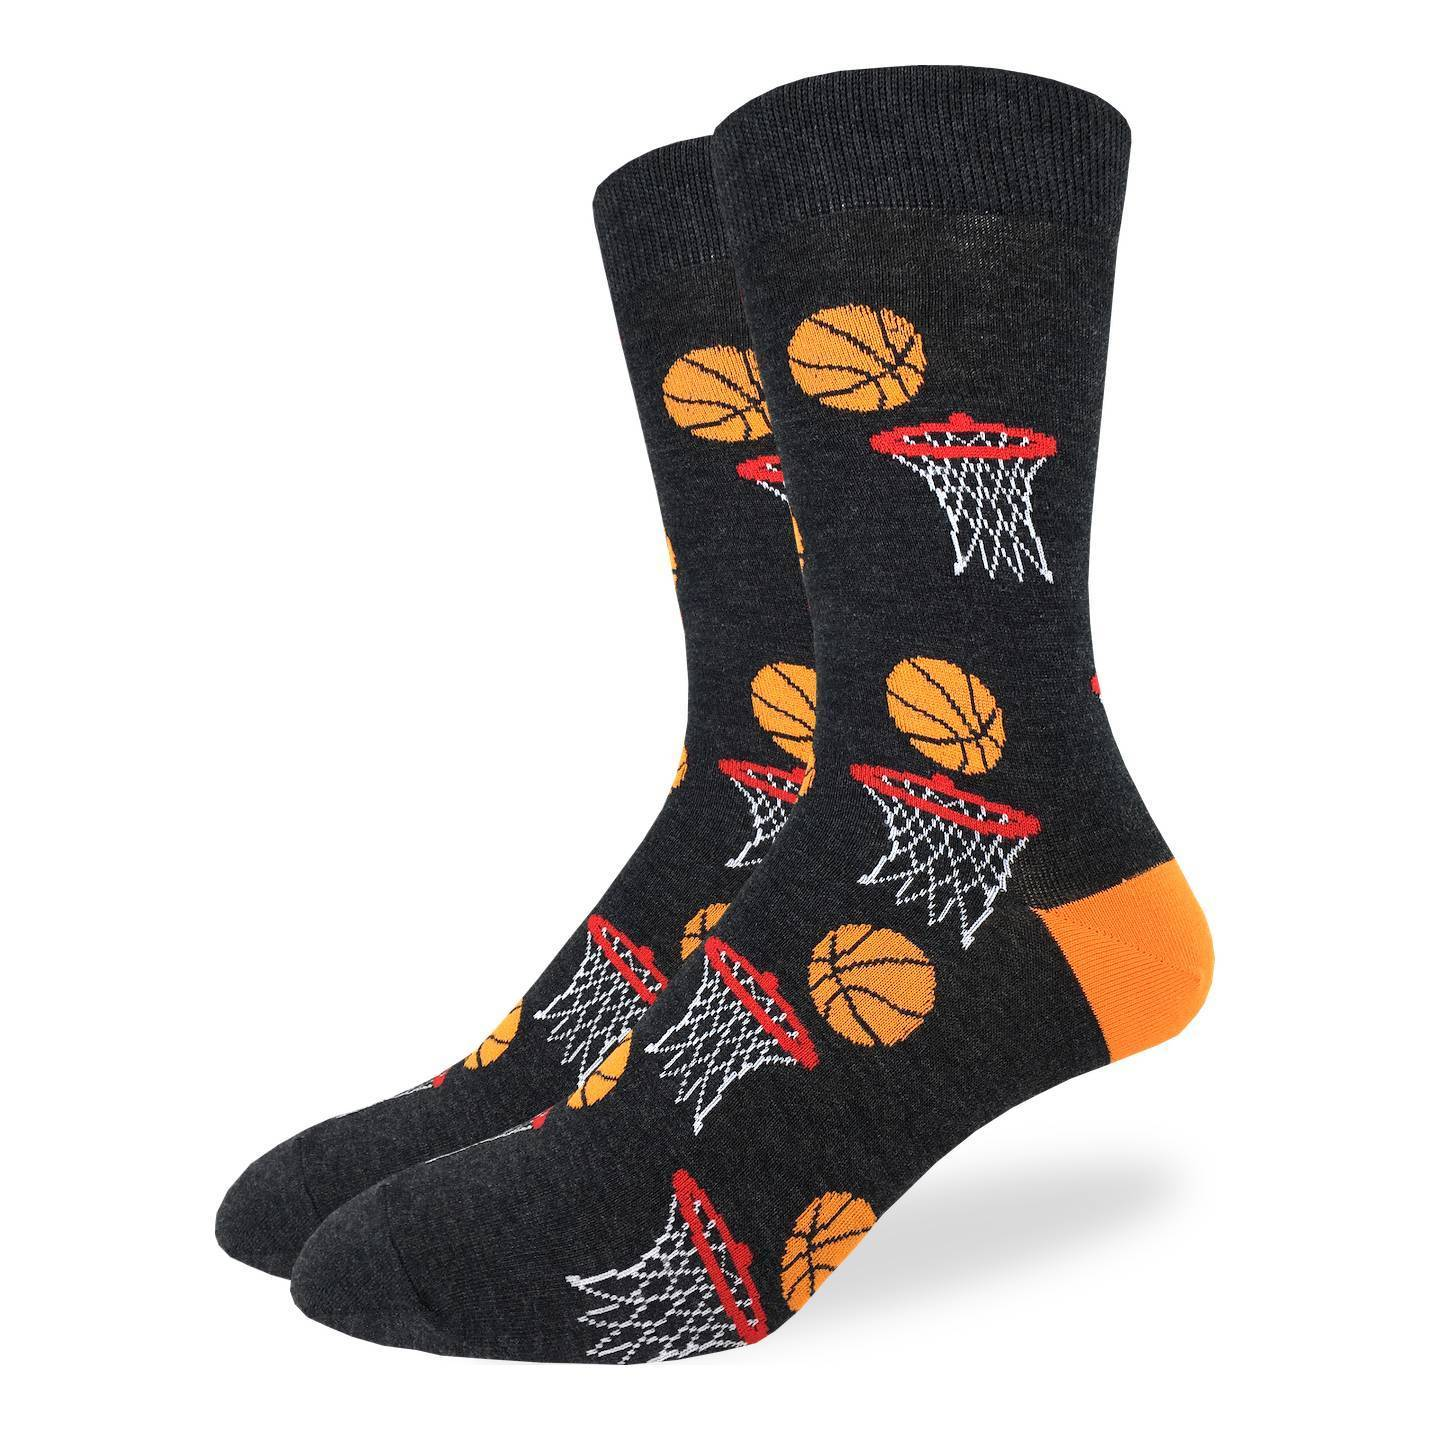 Men's King Size Basketball Socks - Good Luck Sock